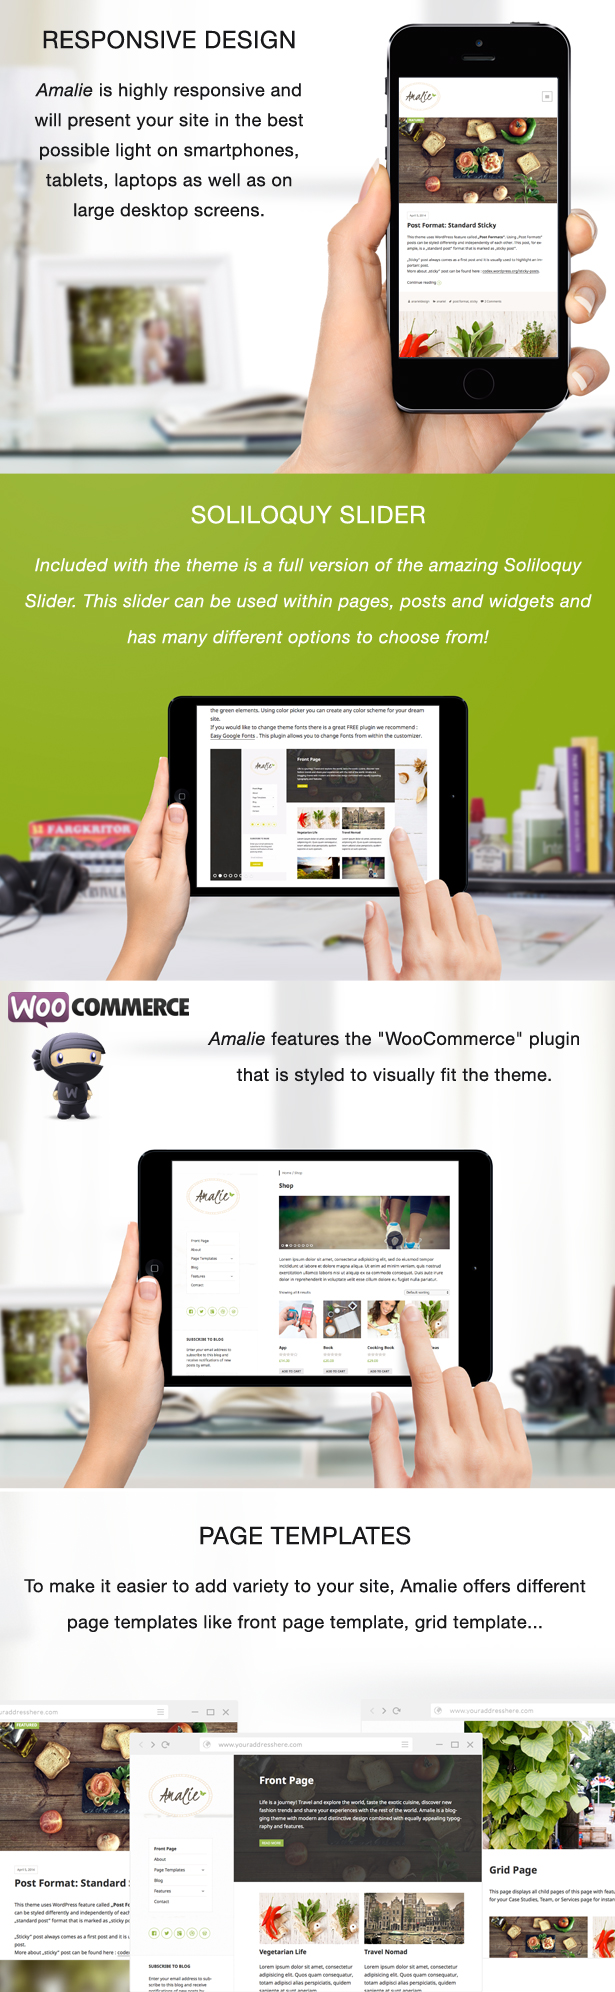 WordPress theme Amalie - Modern Blogging WordPress Theme (Personal)